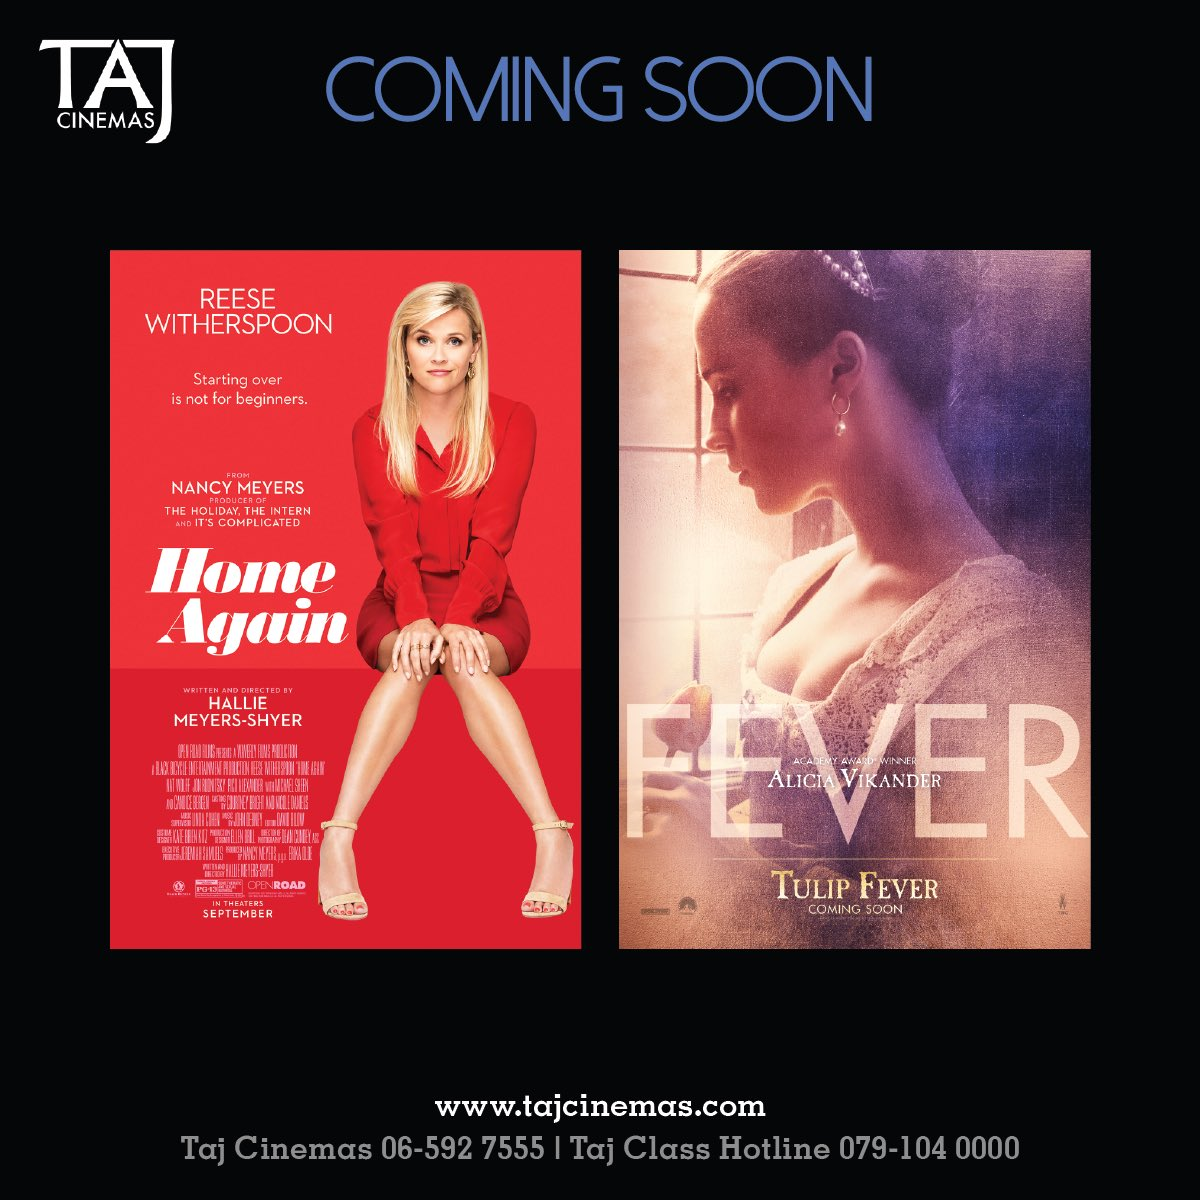 Ladies, we have some interesting movies for you Coming Soon! #TAJCinemas #Movies #Jo #Amman #BeAmman #EidulAdha https://t.co/HJDXYfxlfr